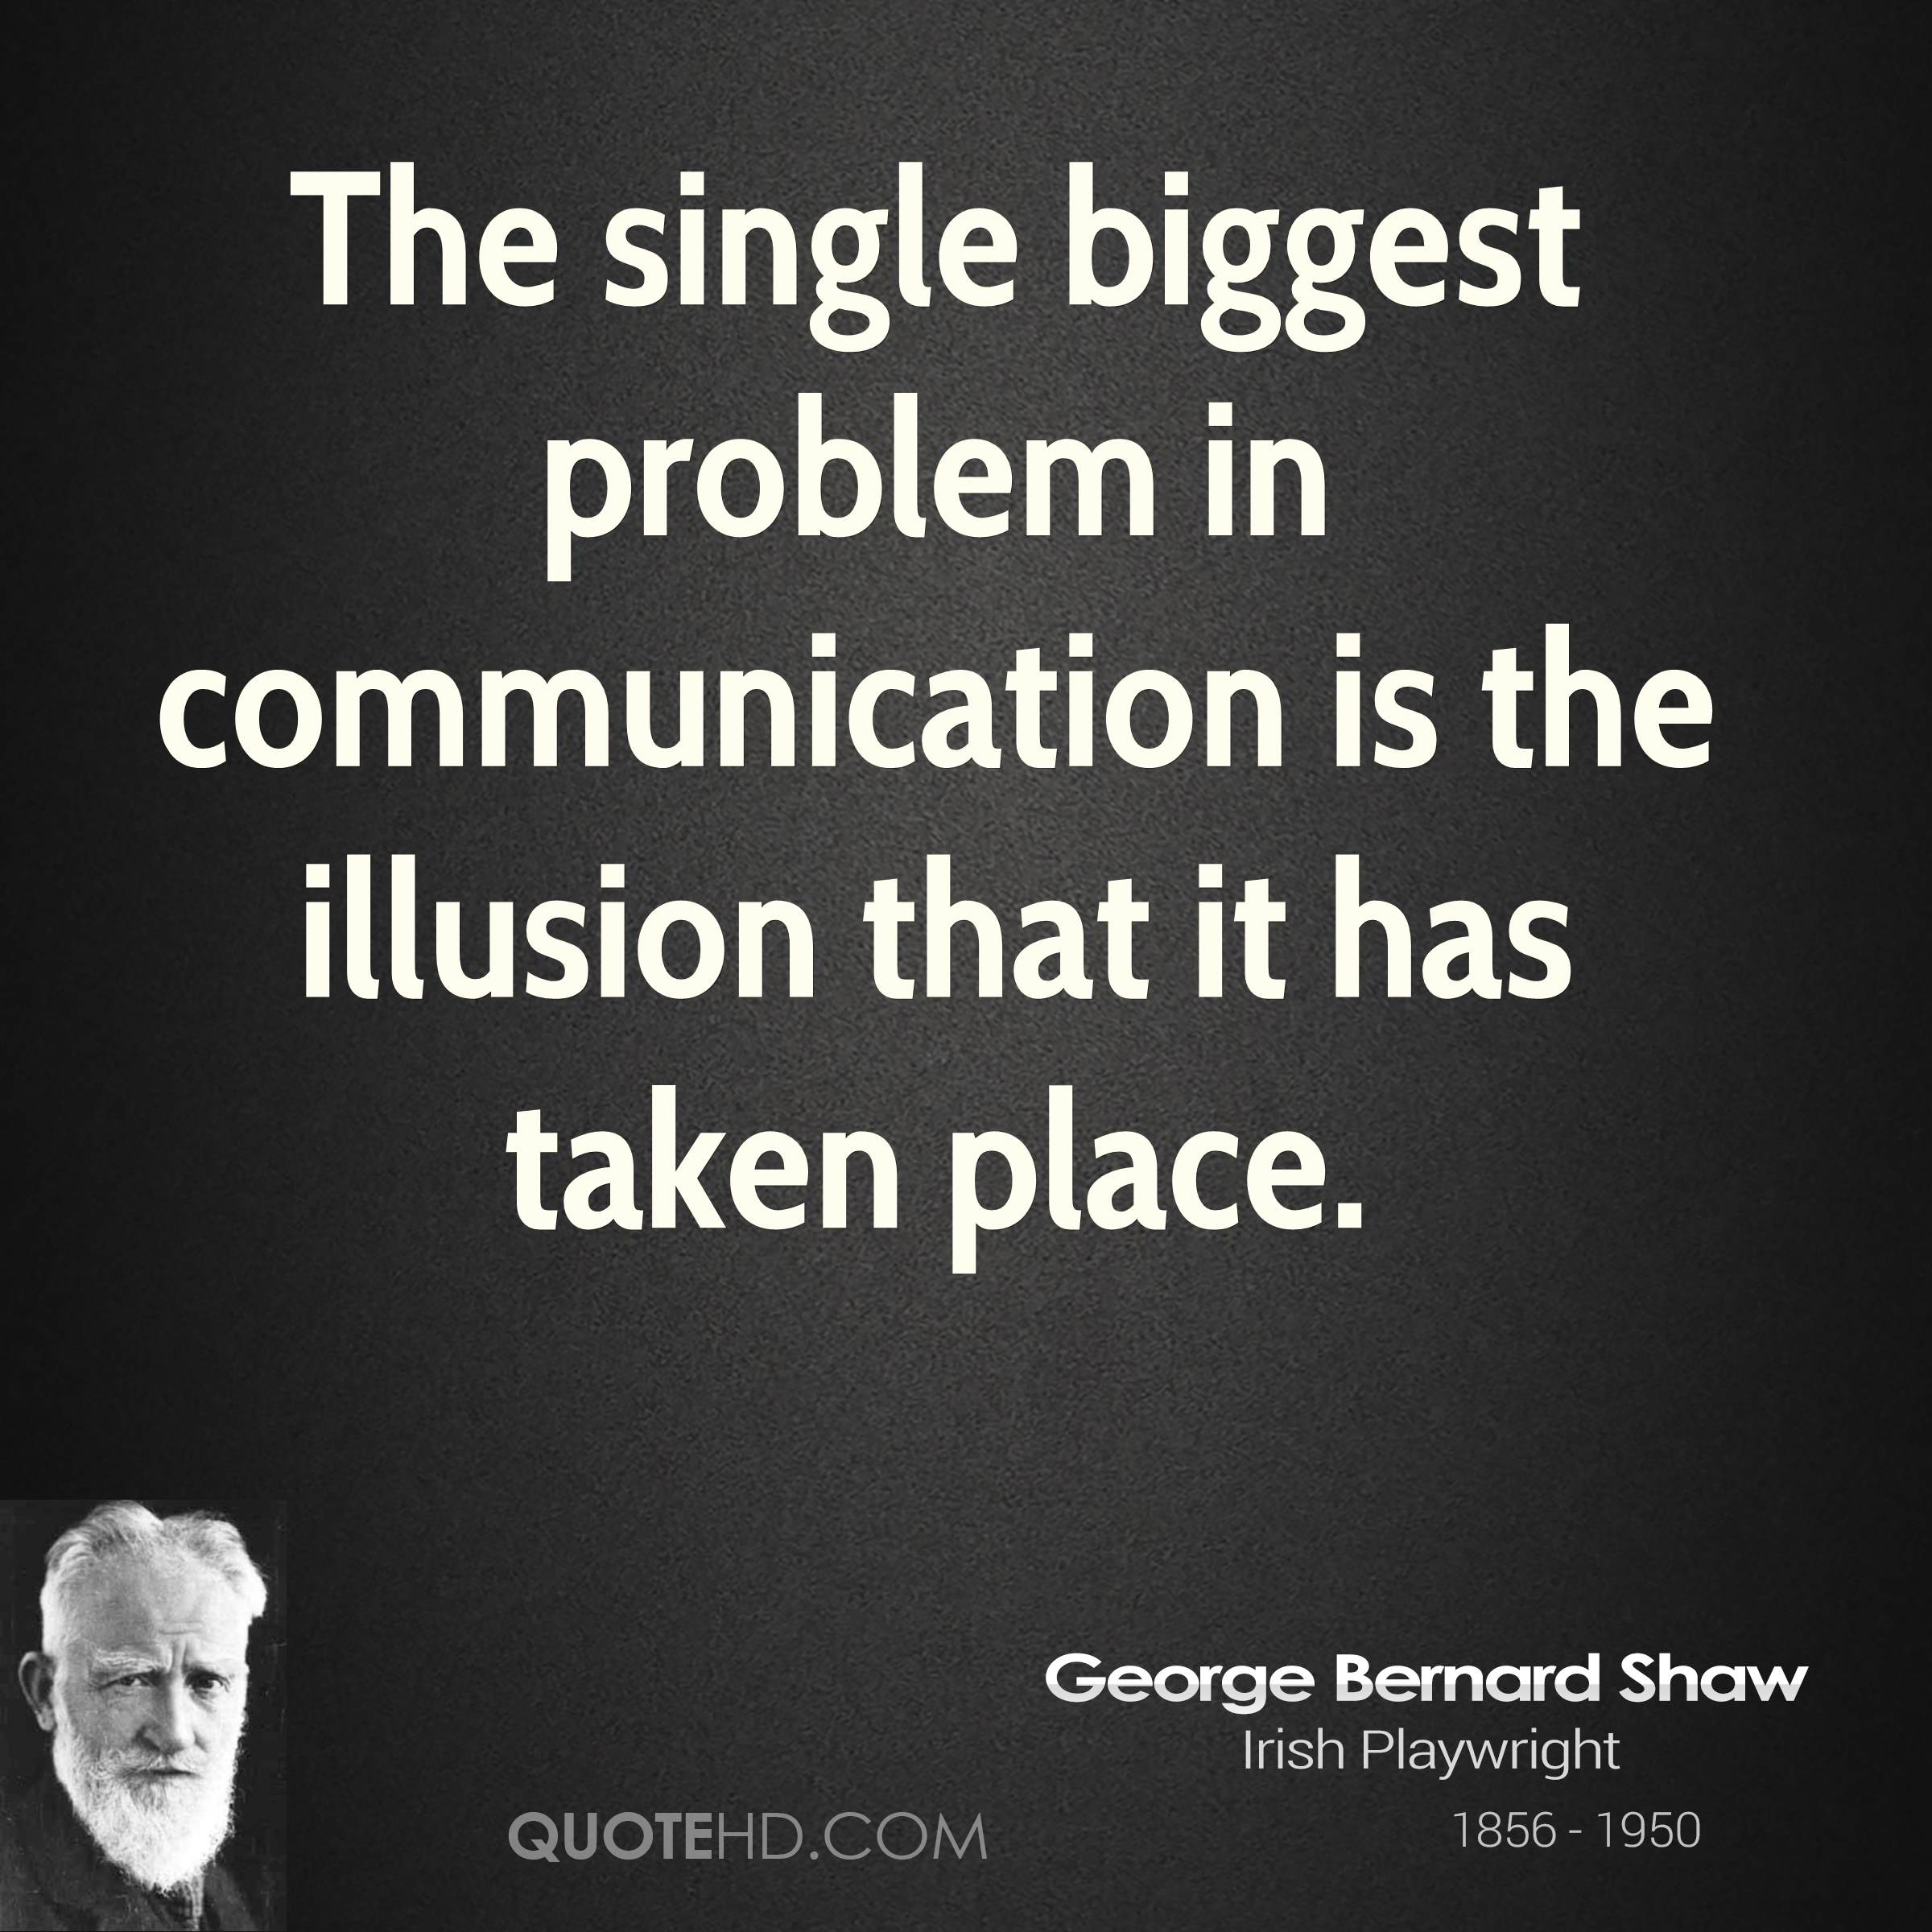 Quotes About Love Relationships: George Bernard Shaw Quotes Communication. QuotesGram